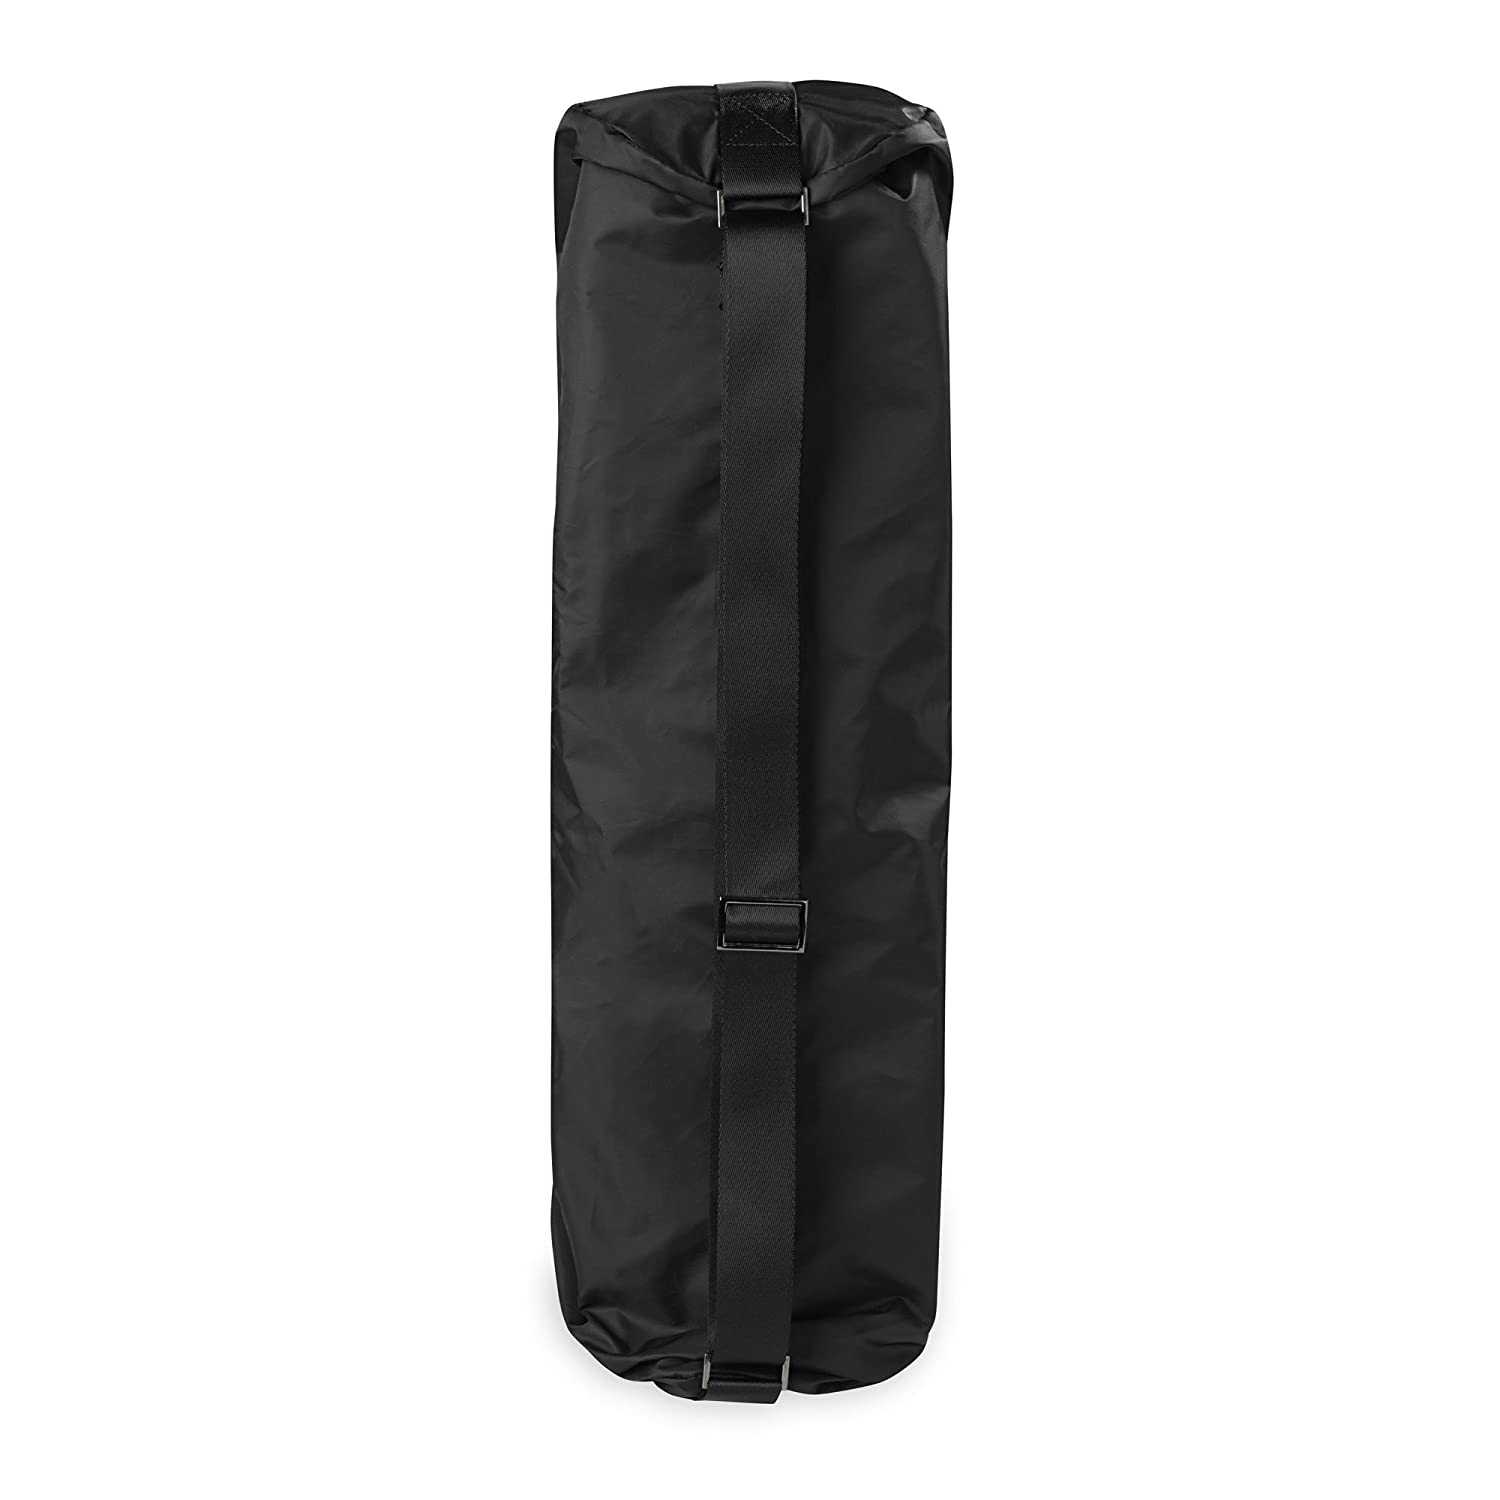 Gaiam - Esterilla de Yoga Rendimiento Bolsa, Negro: Amazon ...